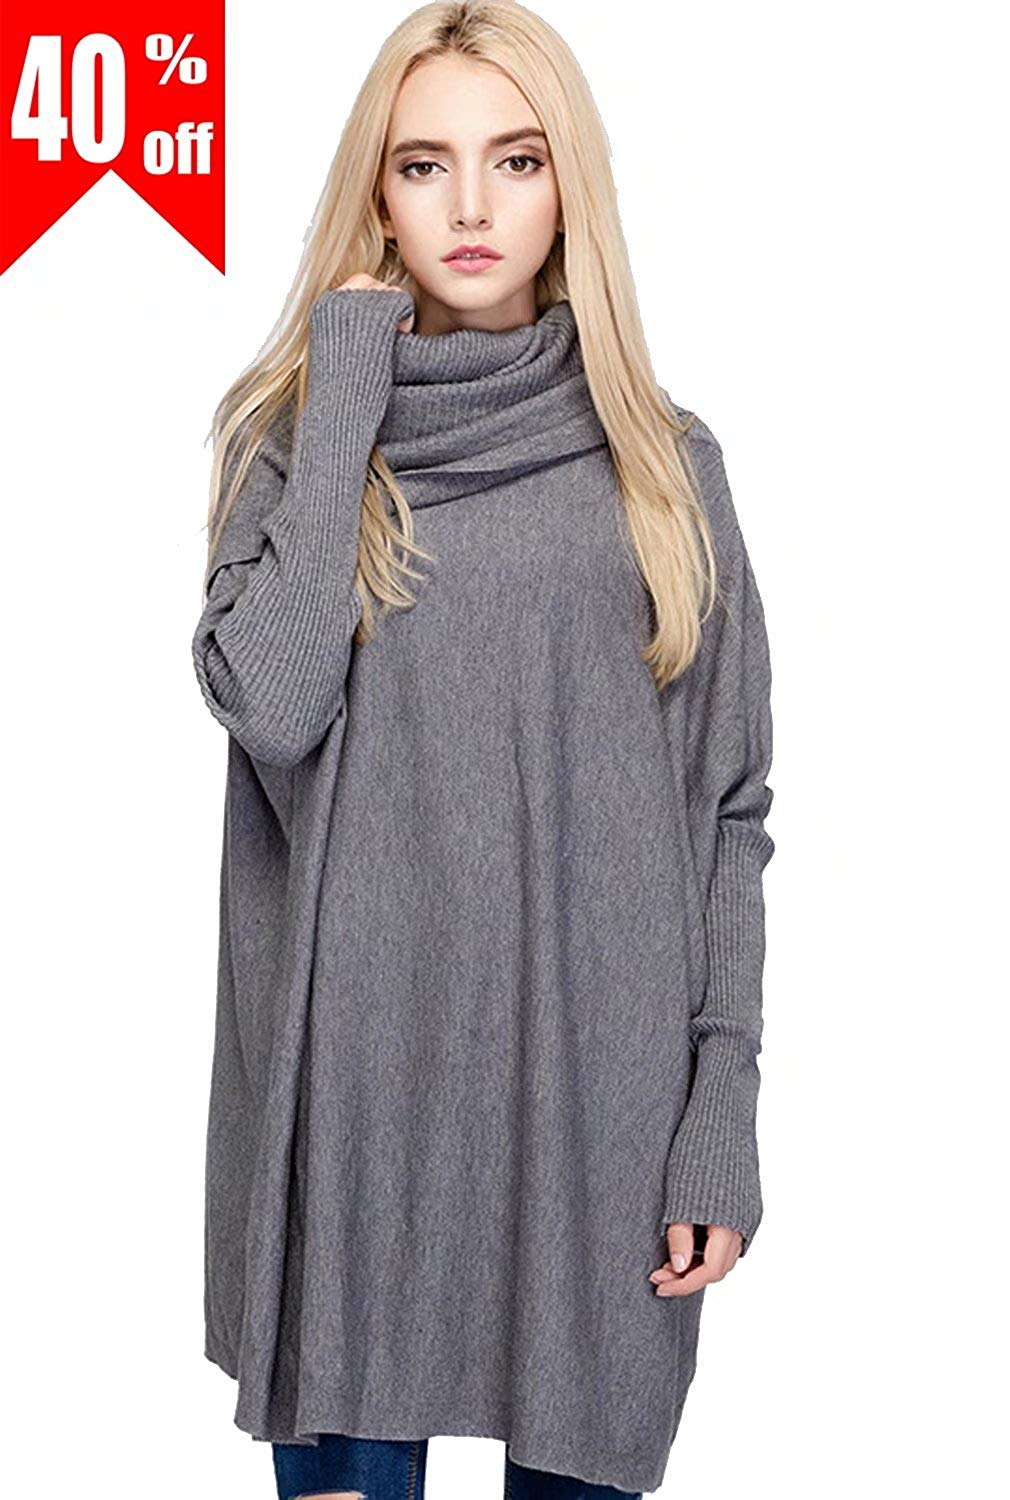 ASWear NellBang Women's Winter Knit Pullover Sweater Cowl Neck Oversized with Long Bat Sleeve